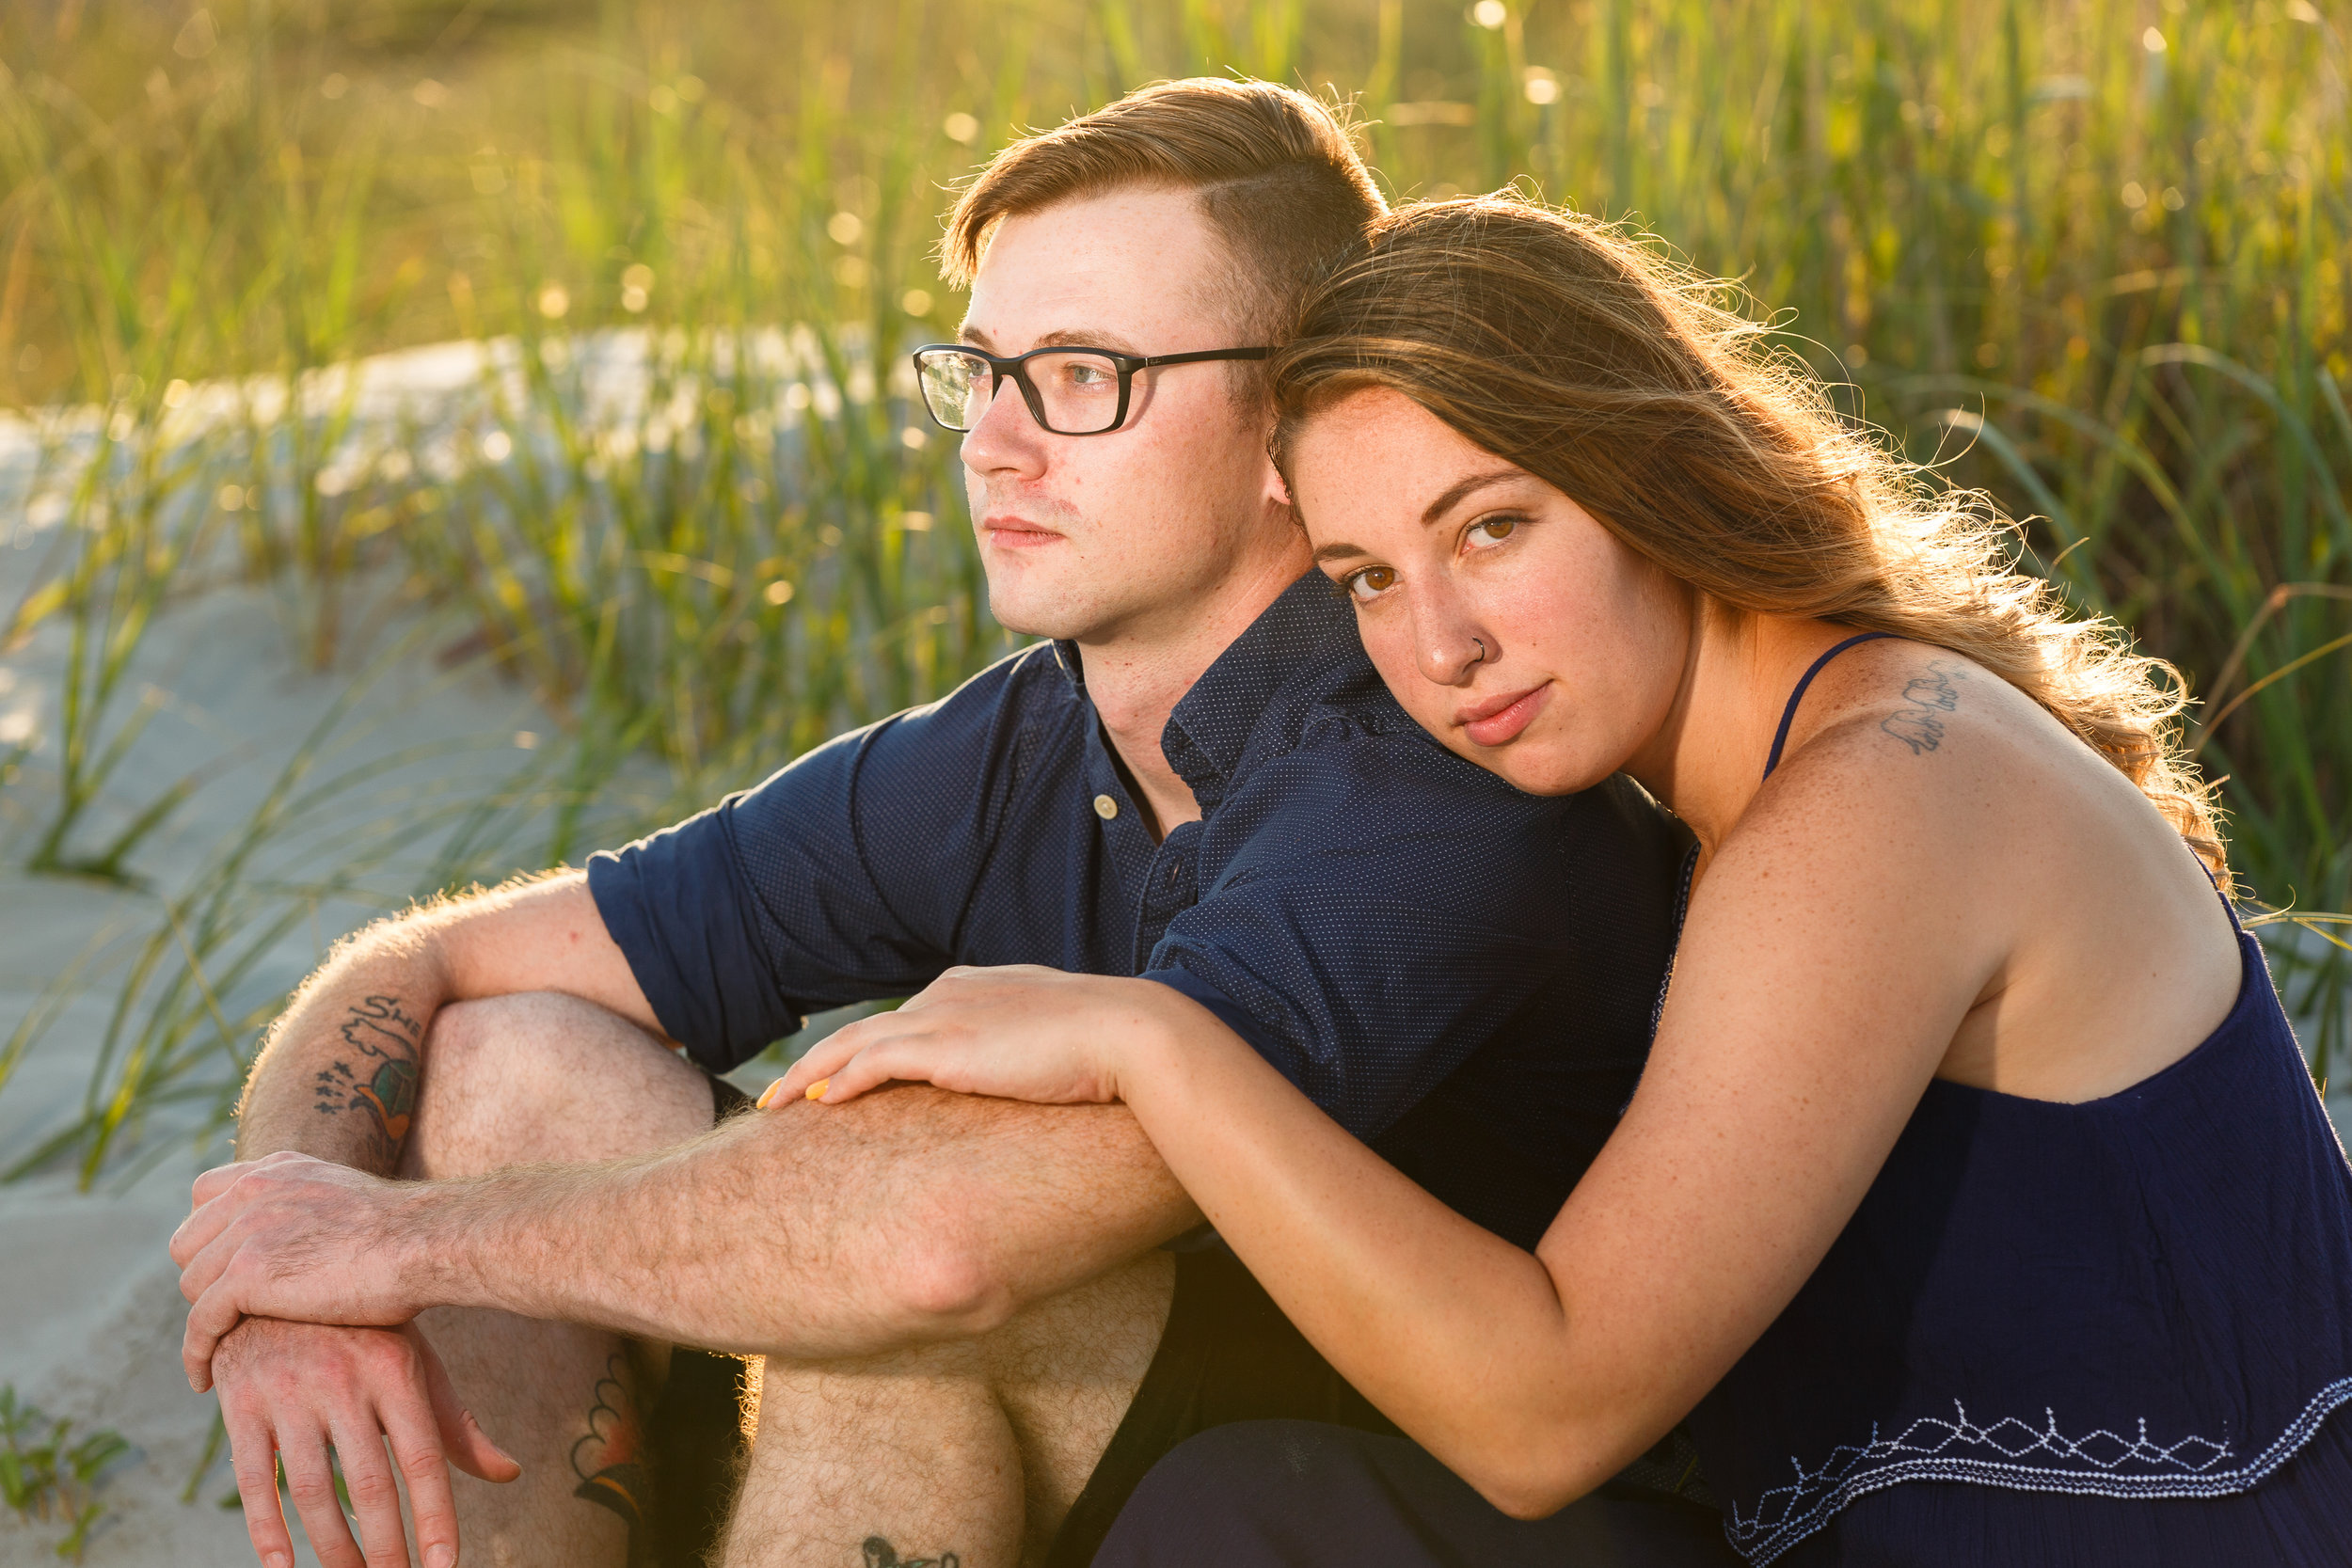 Backlit Couple by Beach Grass